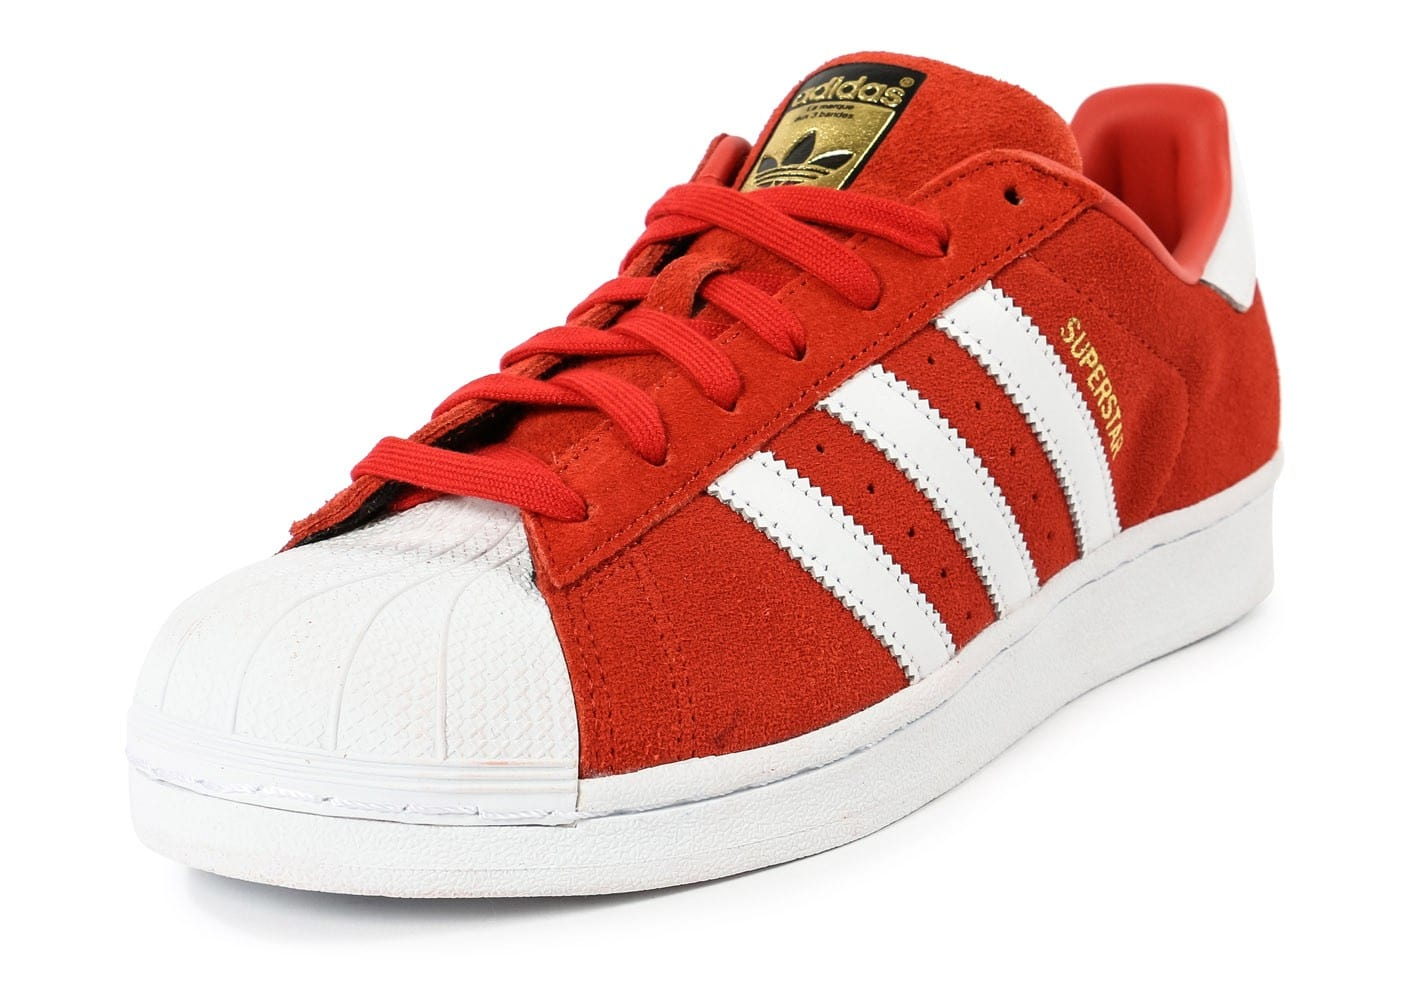 adidas Superstar Suede rouge et blanche - Chaussures Baskets homme ... 5a34398dd18d